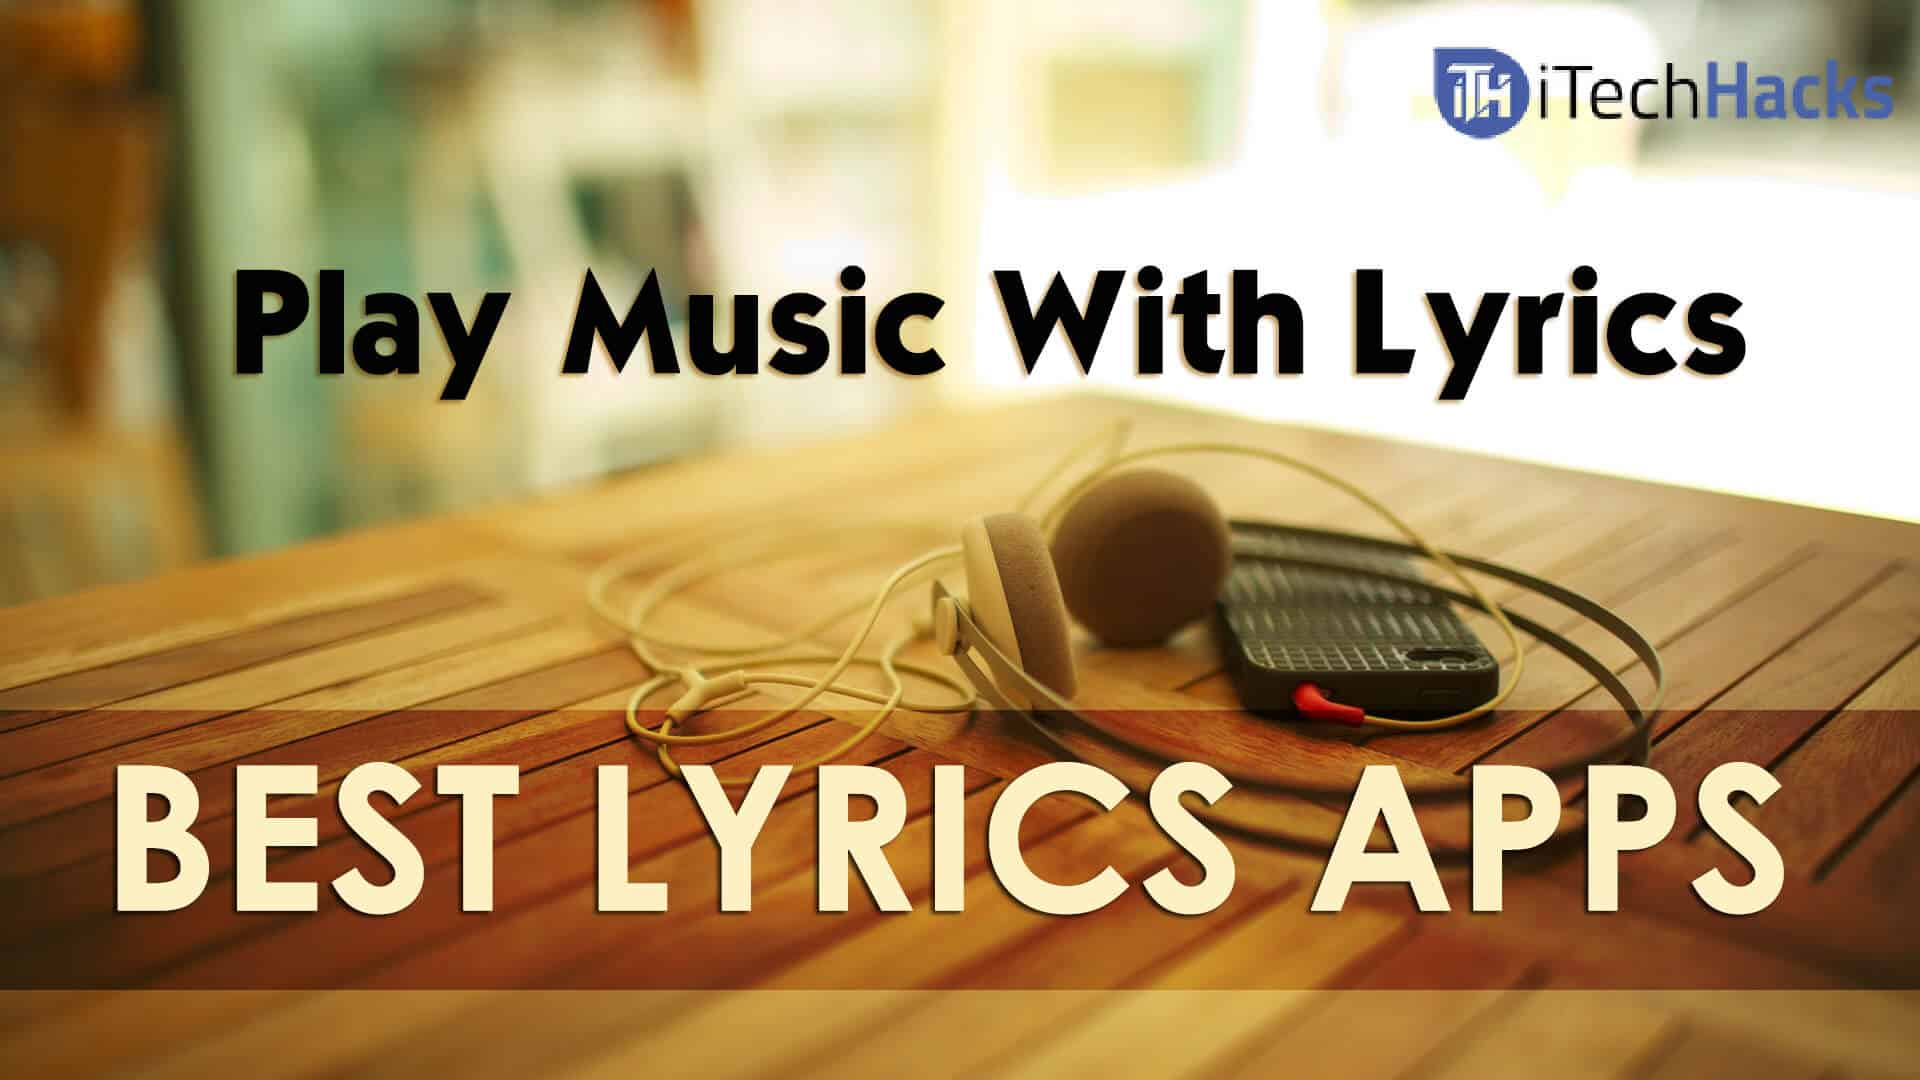 How To Play Songs With Lyrics In Android (No-Root)